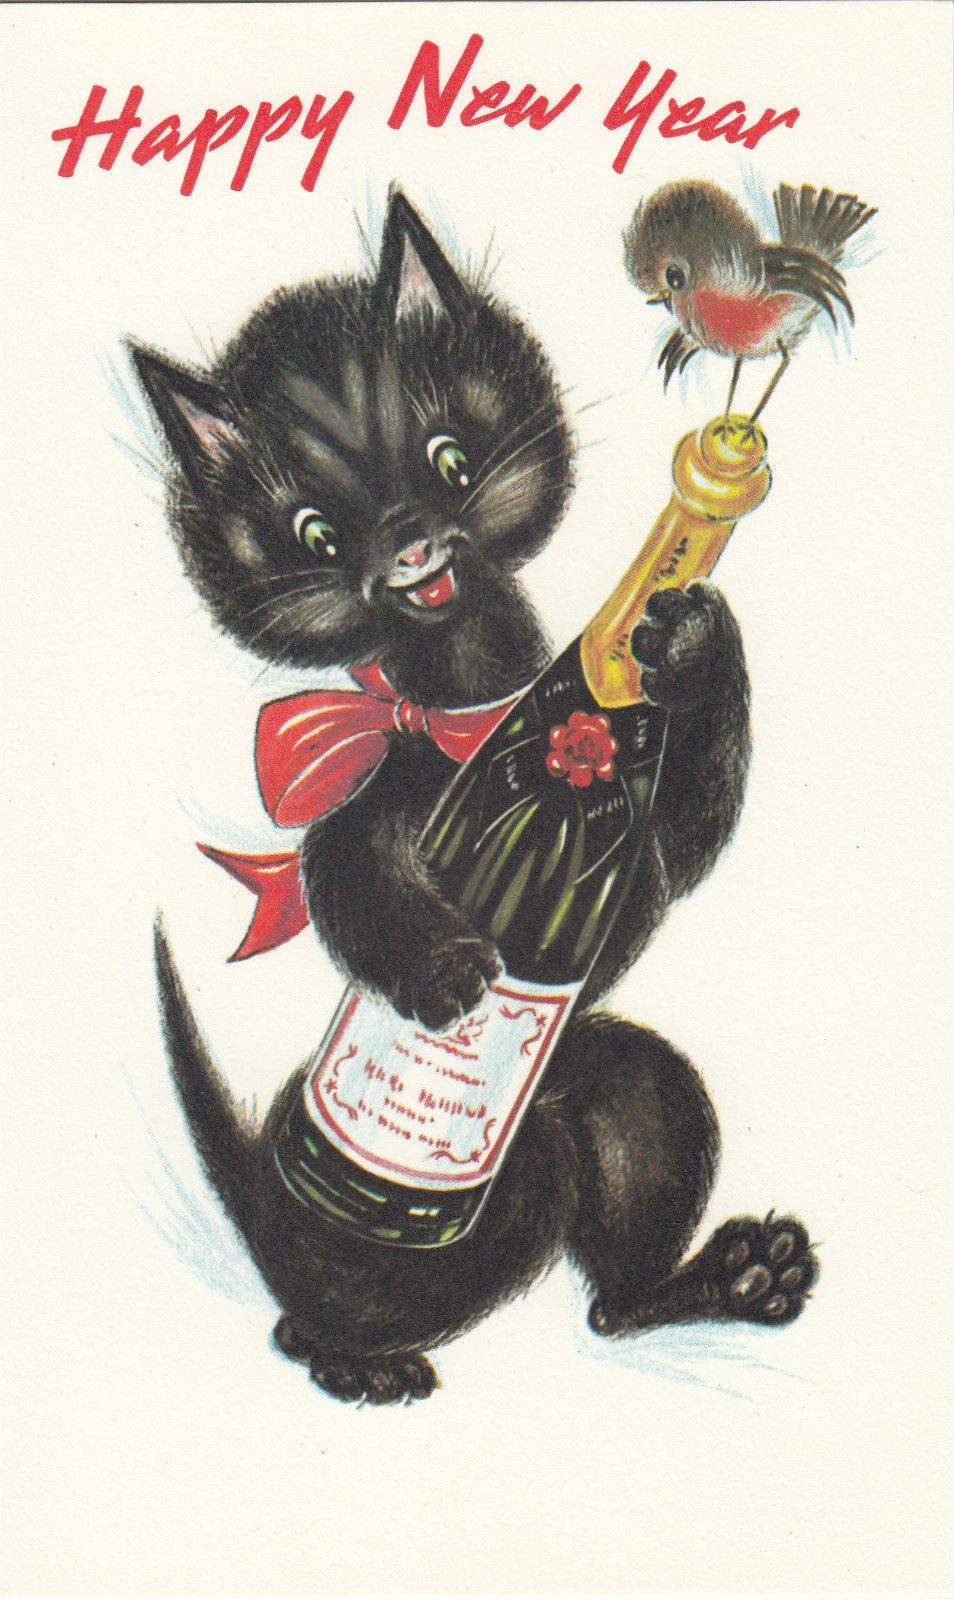 Happy new year vintage 1970s greeting card merry champagne black happy new year vintage 1970s greeting card merry champagne black cat kitten for sale kristyandbryce Gallery